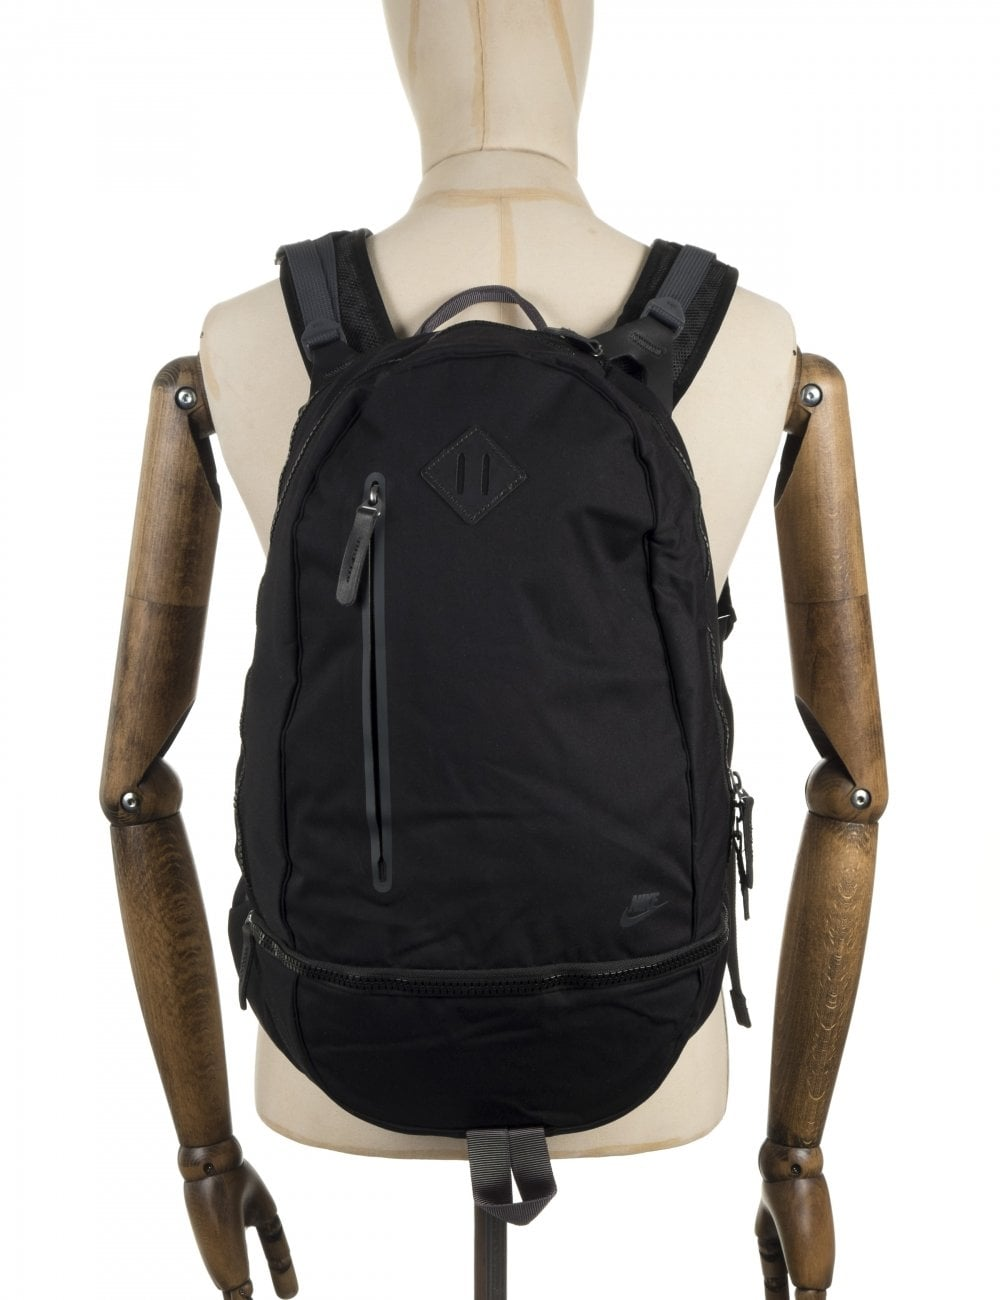 62d36f112129 Nike SB Cheyenne Pursuit 3.0 Backpack - Black - Accessories from Fat ...